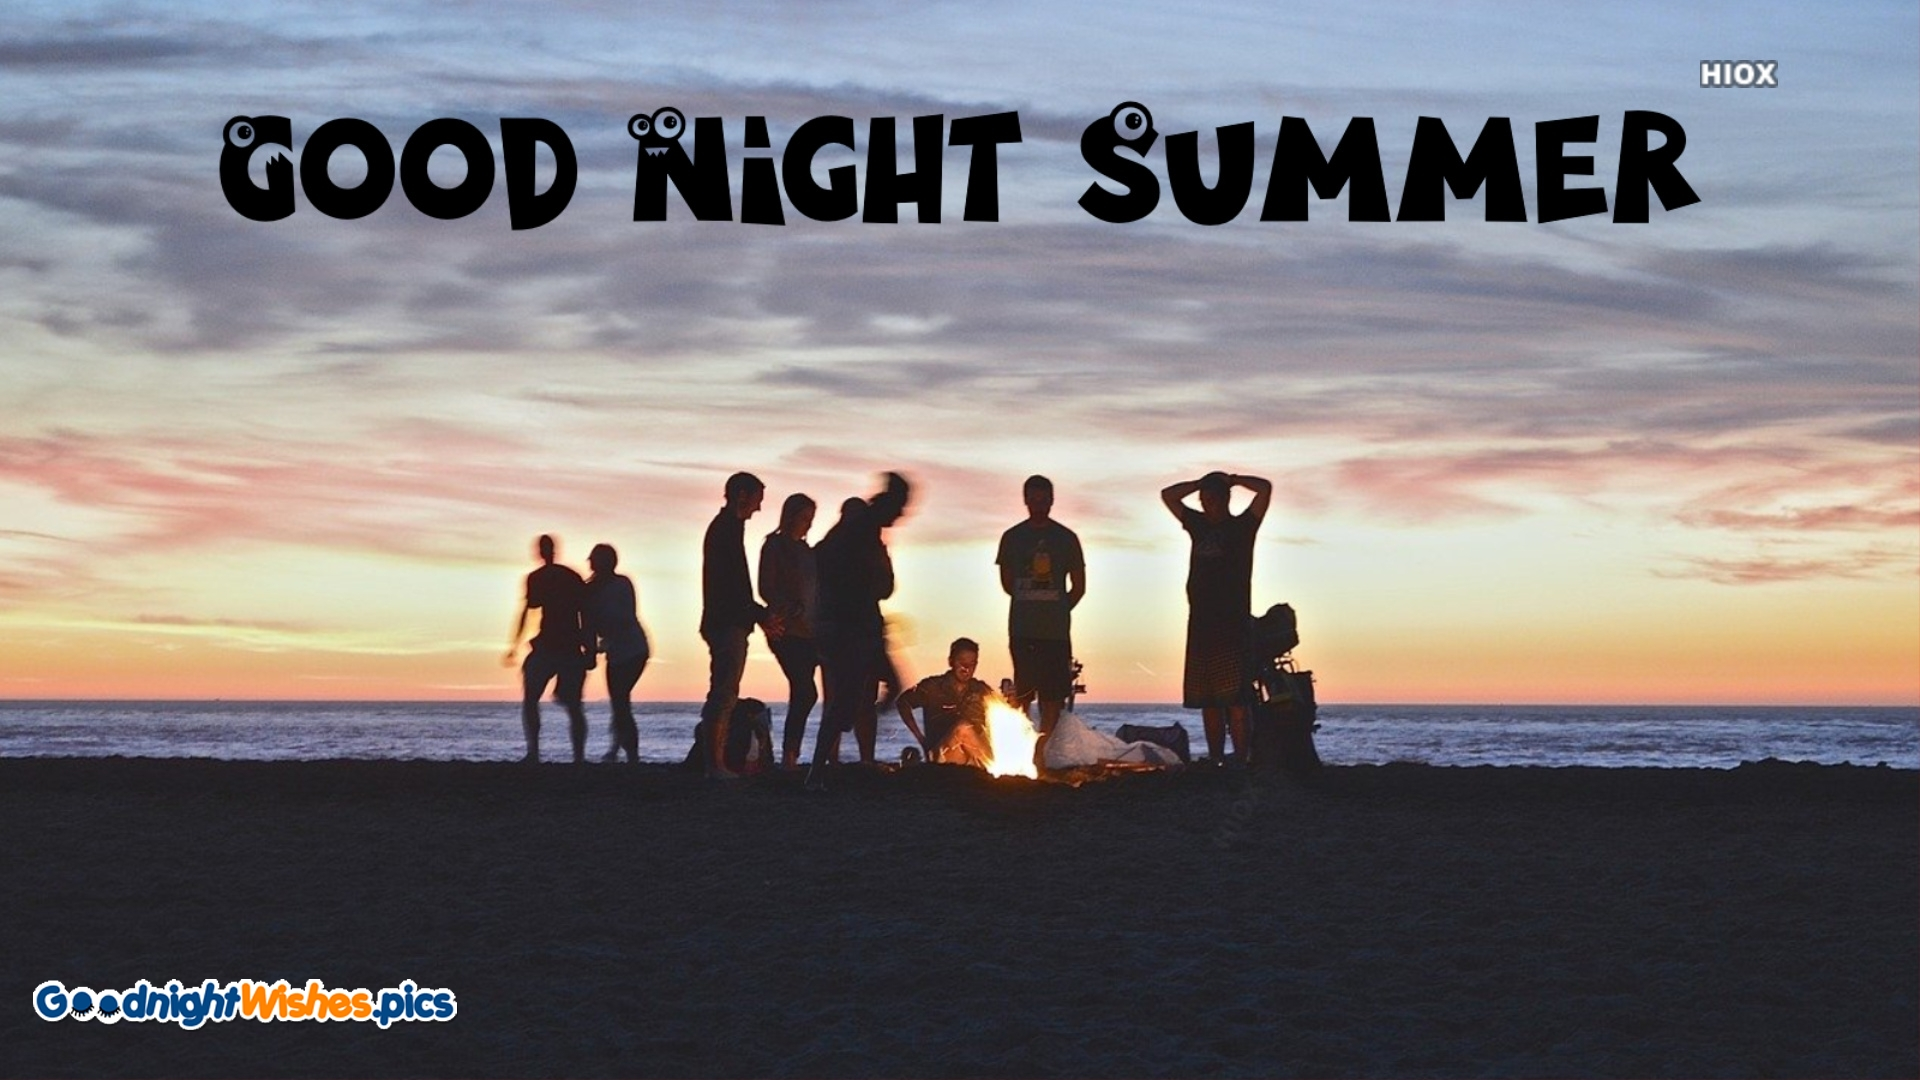 Good Night Summer Image